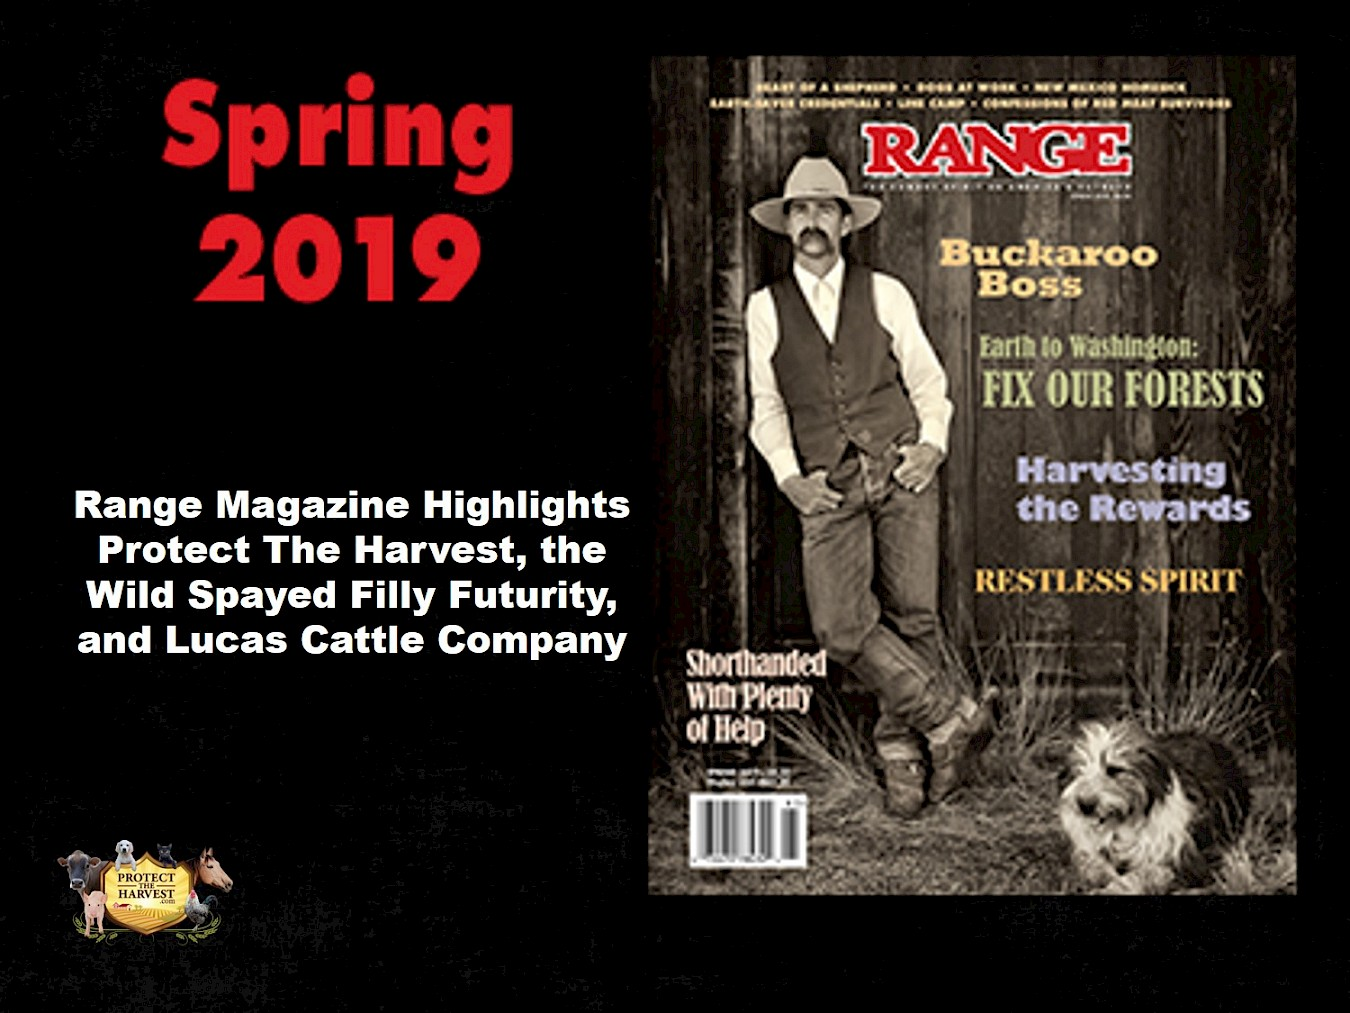 Range Magazine Highlights Protect The Harvest, the Wild Spayed Filly Futurity, and Lucas Cattle Company